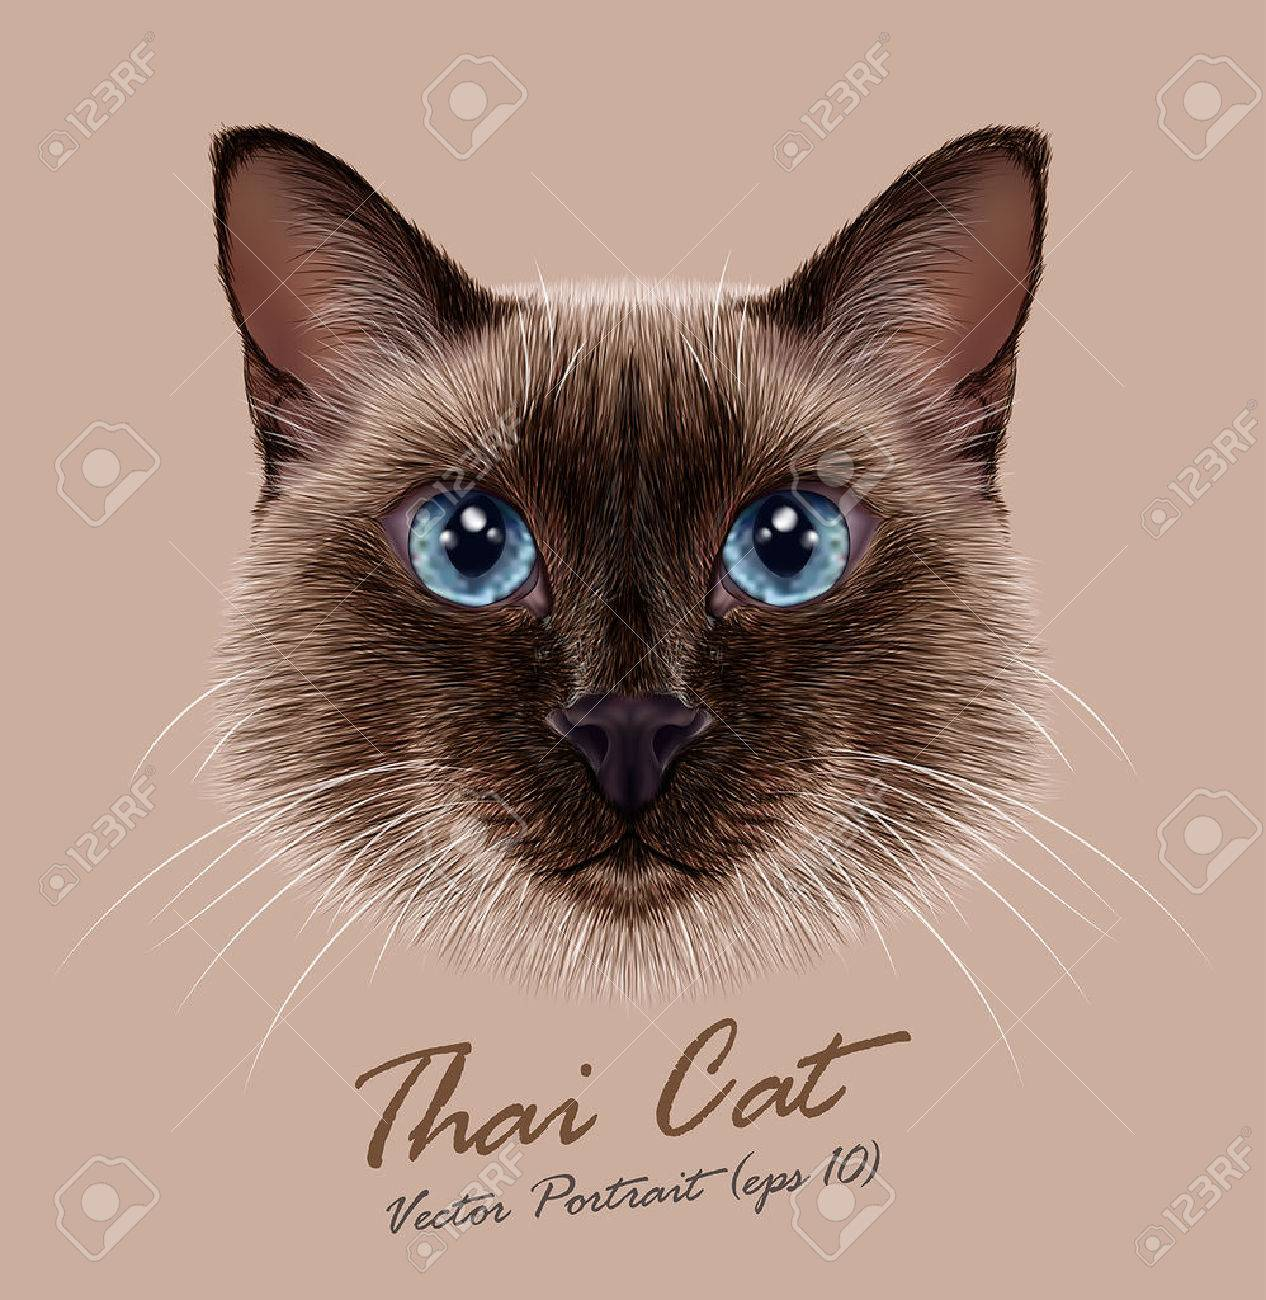 Siamese Cat Stock s & Royalty Free Siamese Cat